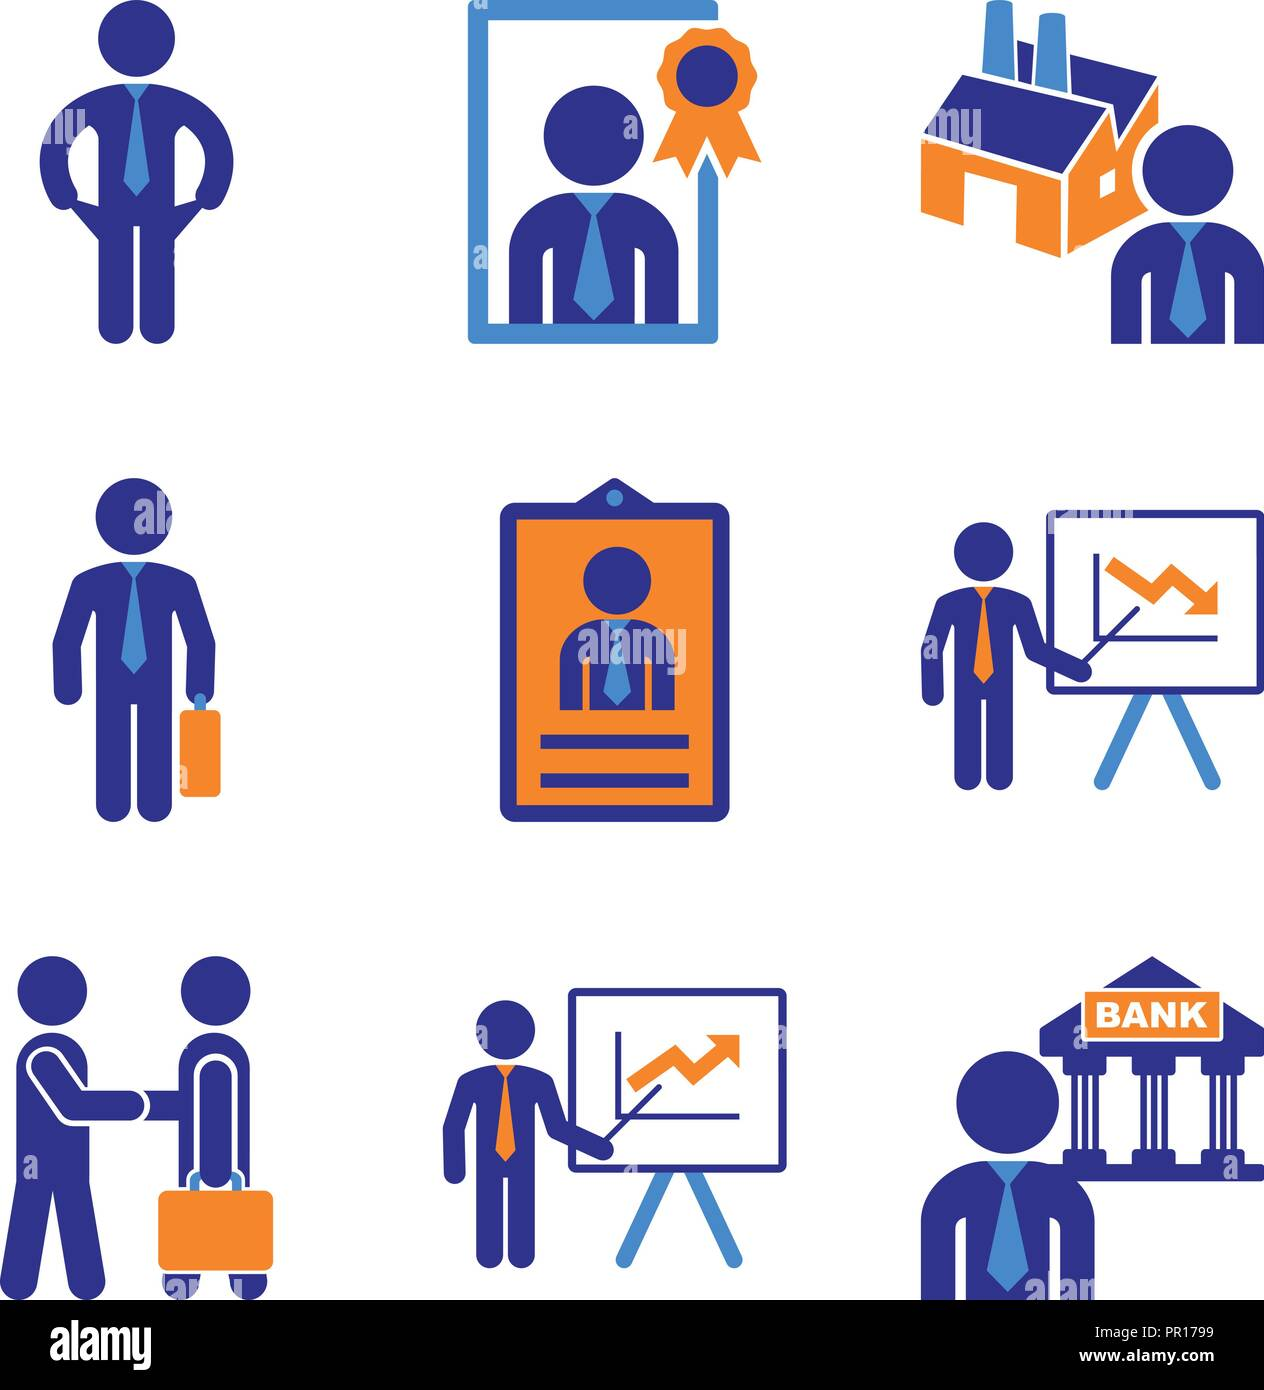 Industry management - Stock Vector